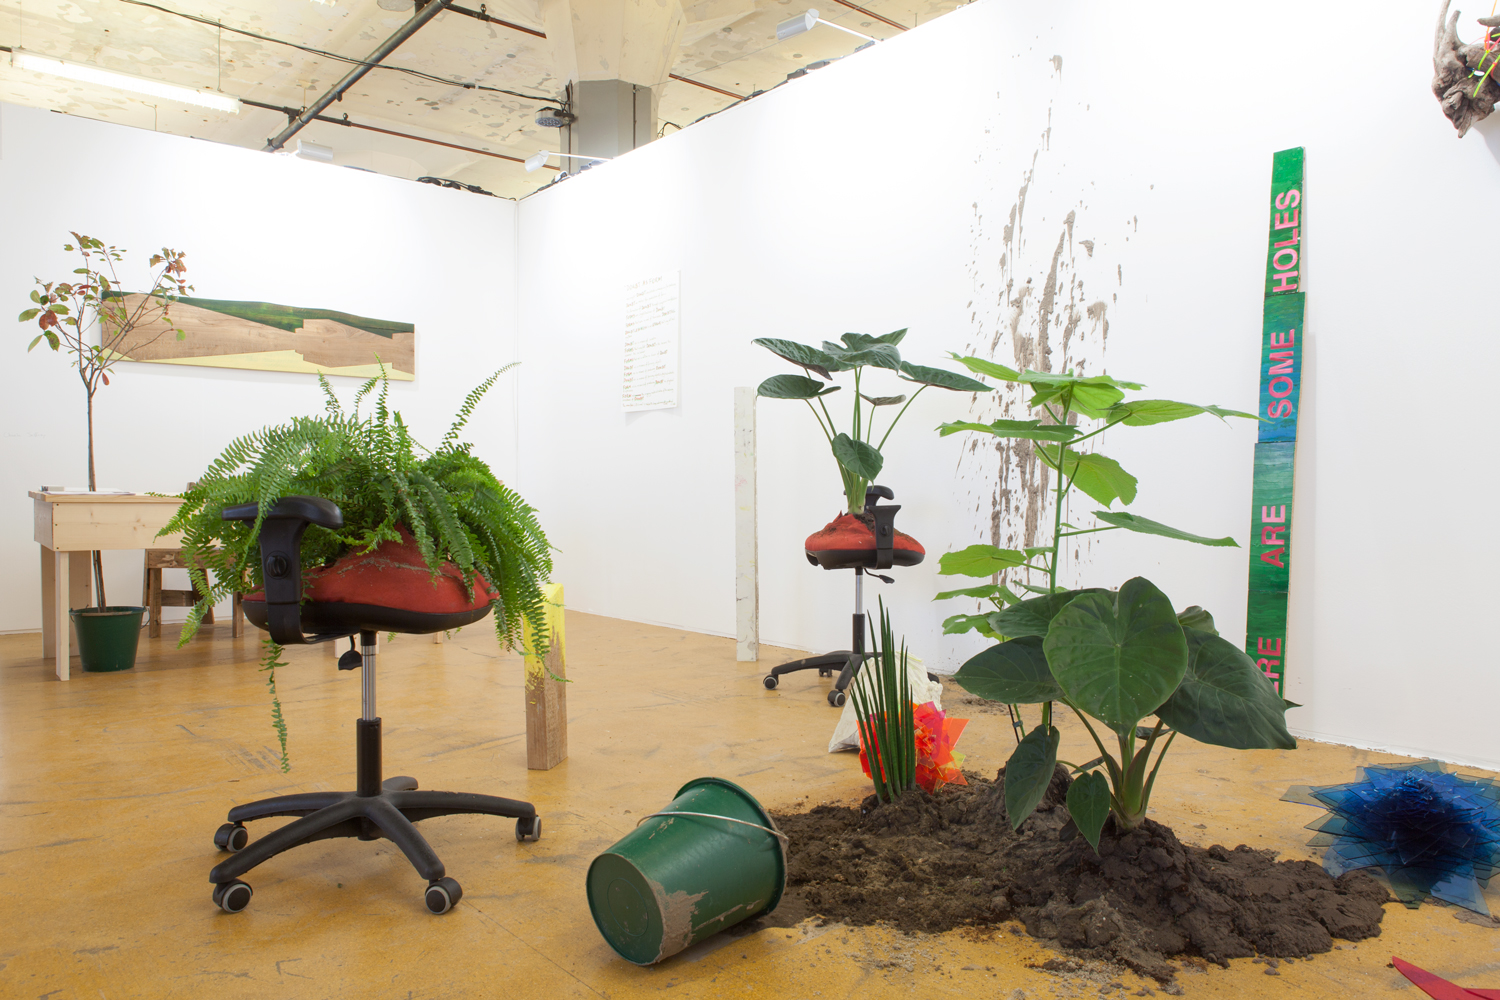 Art Rotterdam 2016: Charlie Hamish Jeffery, The Office of Imaginary Landscape